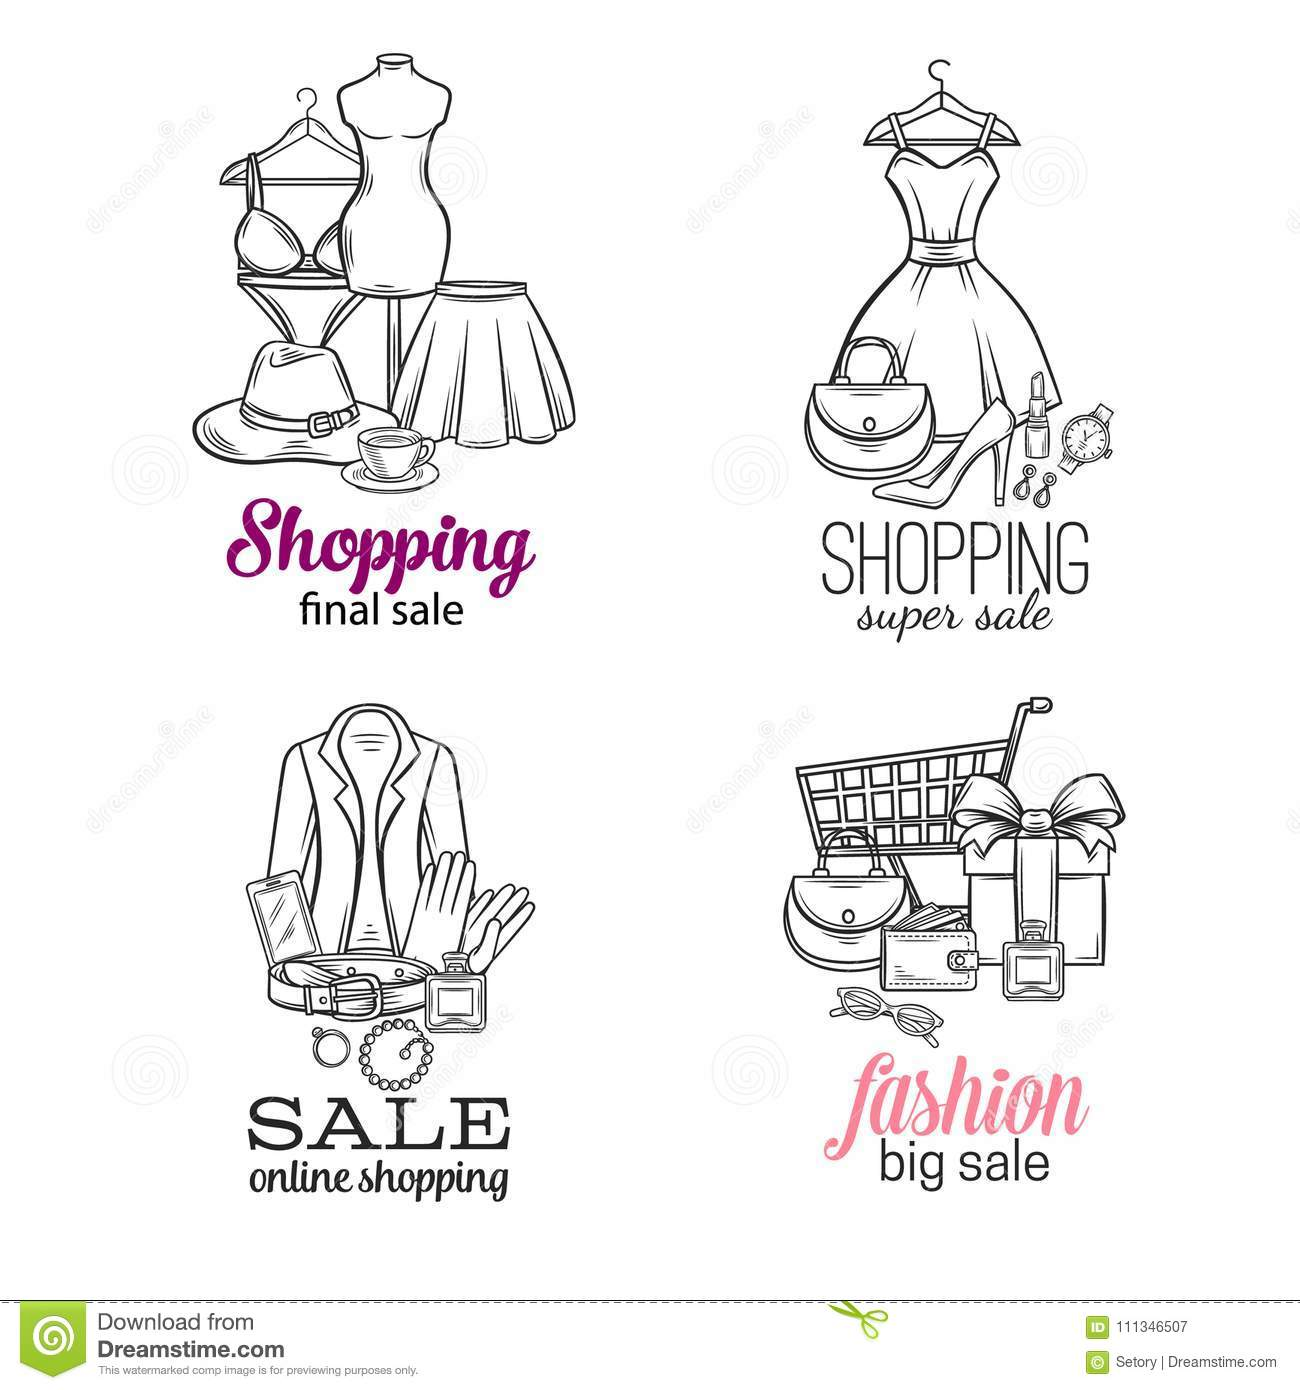 Online Shopping Stock Vector Illustration Of Drawn 111346507